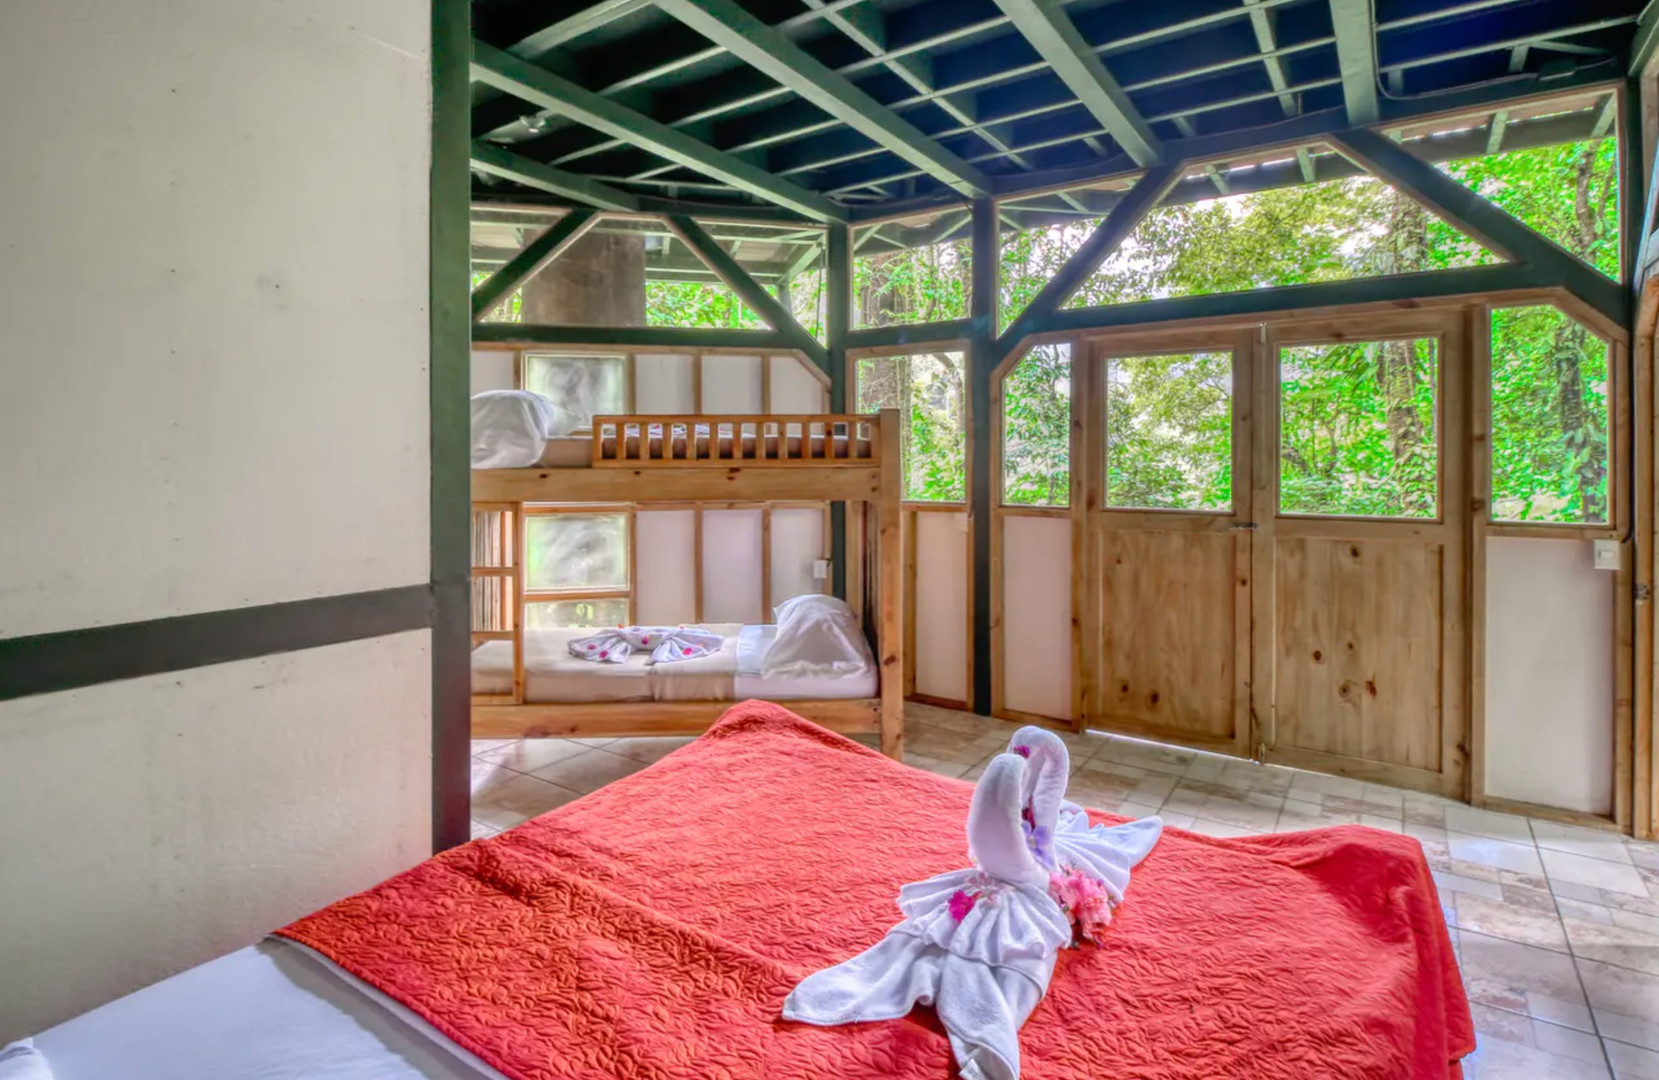 Lower bedroom with bunkbeds